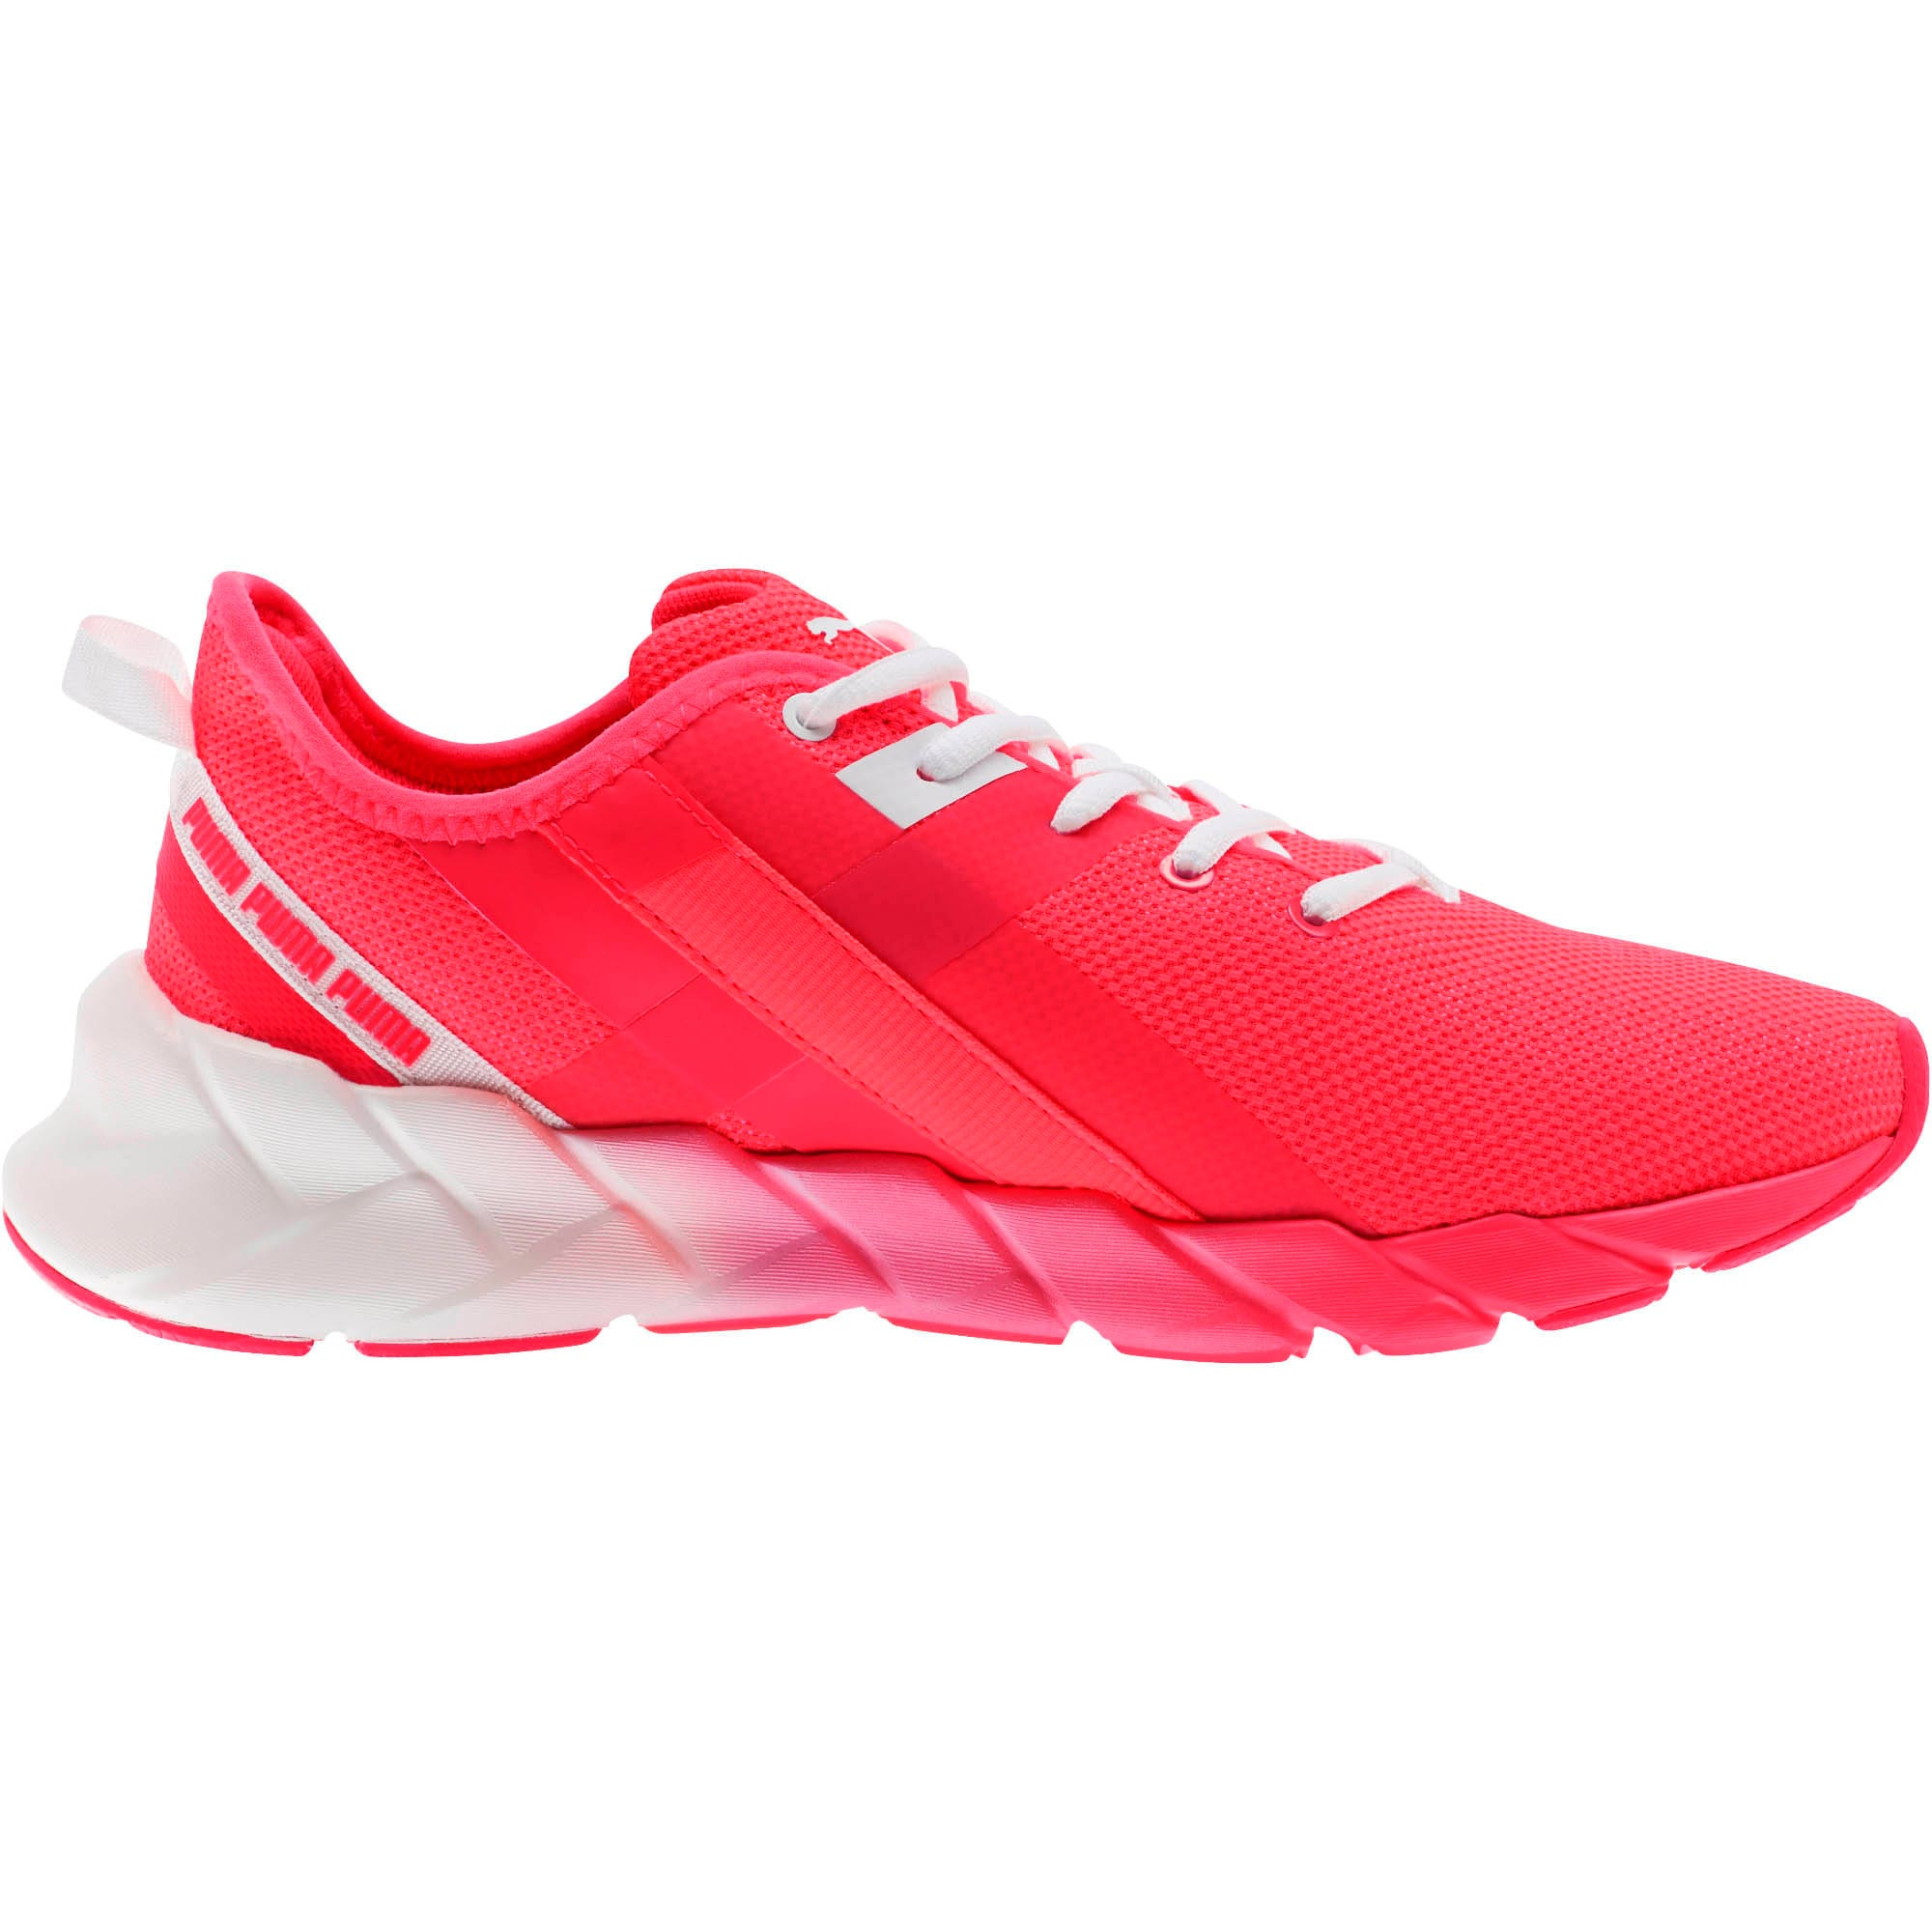 Thumbnail 4 of Weave XT Fade Women's Training Shoes, Pink Alert-Puma White, medium